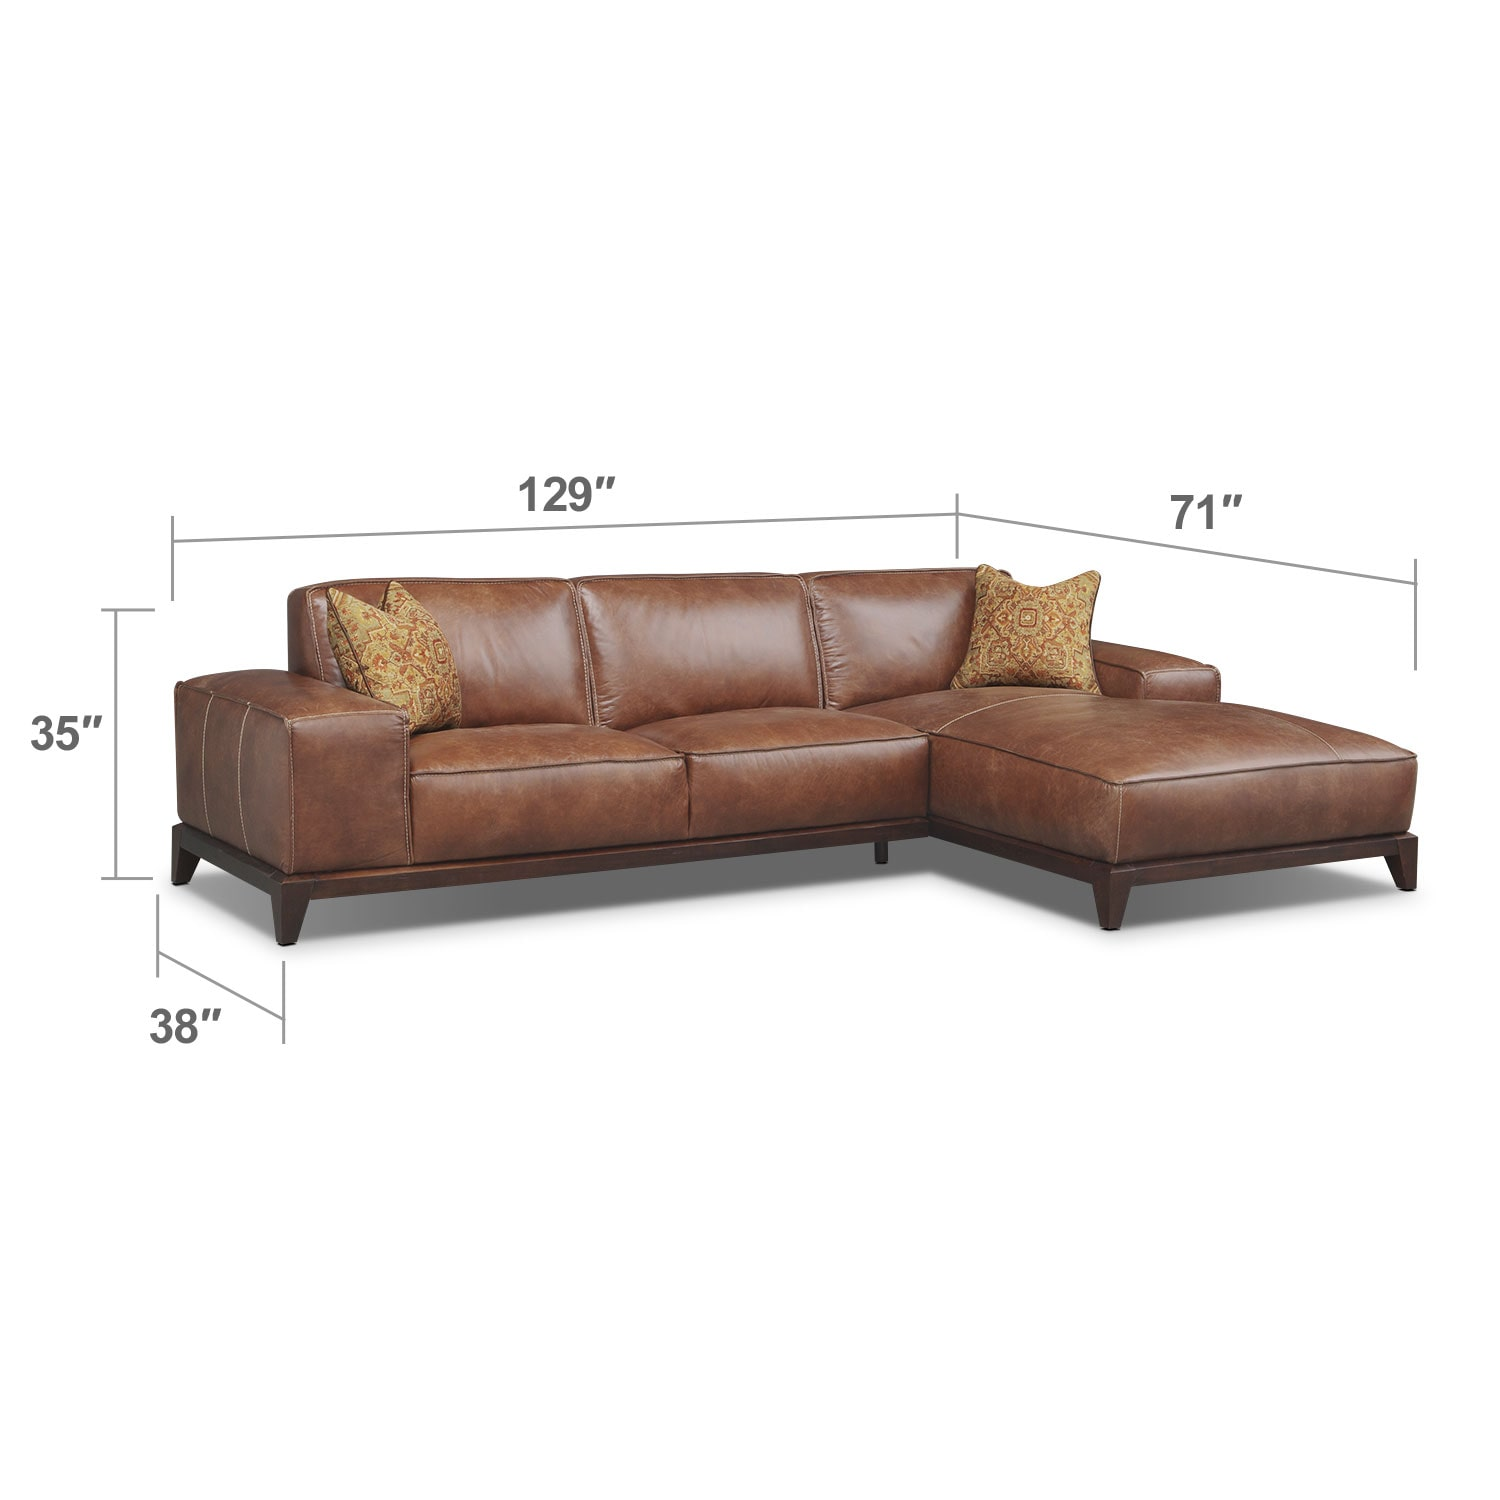 Living Room Furniture - Harrison 2-Piece Right-Facing Sectional - Tobacco